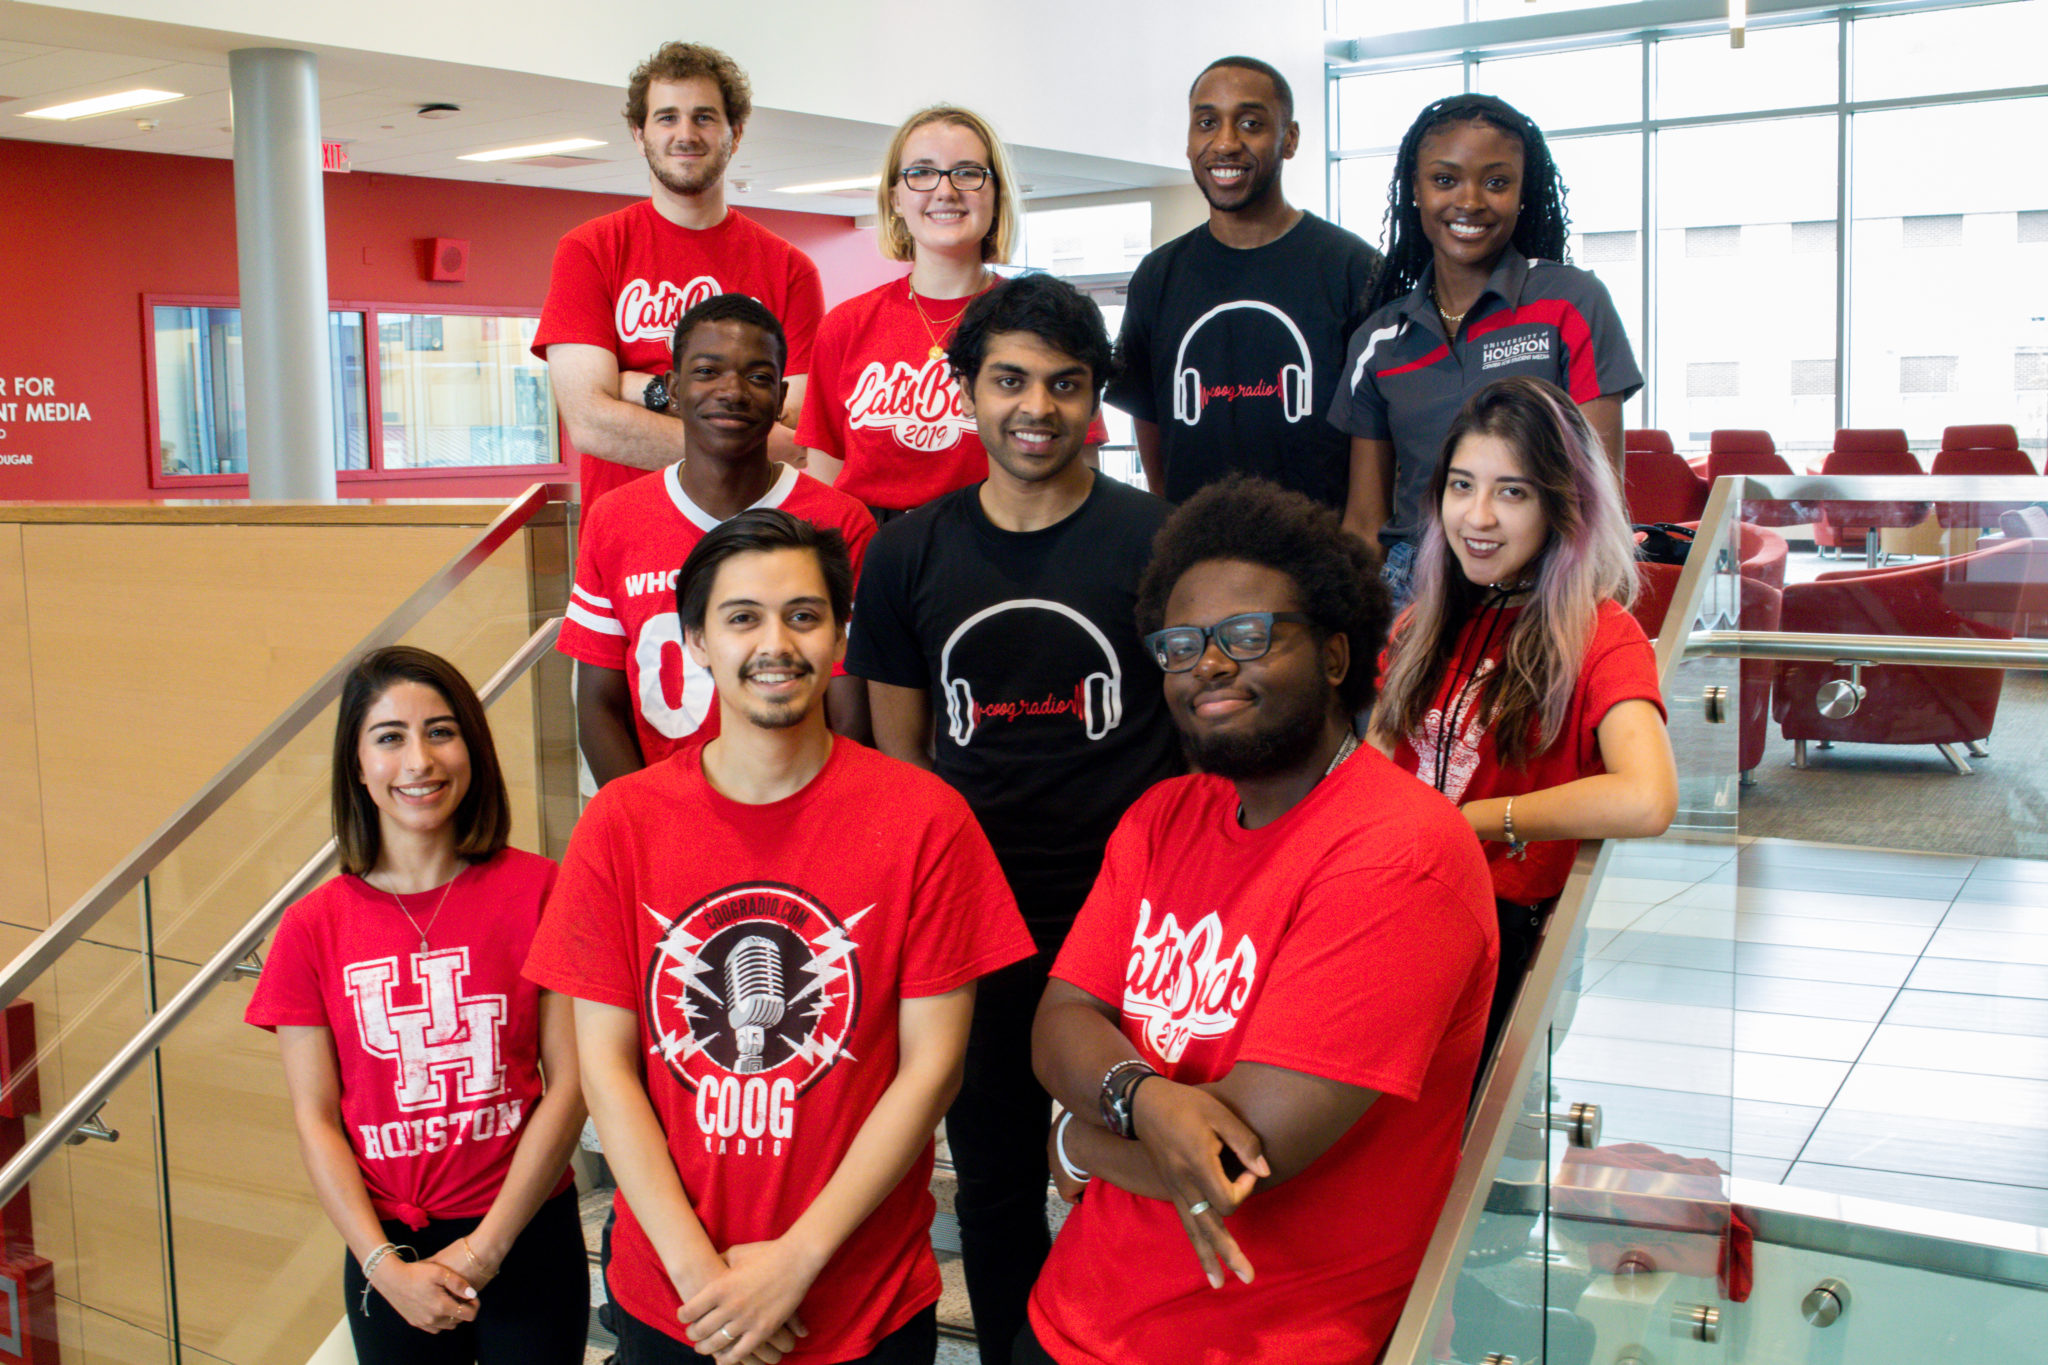 Meet Your 2019-2020 Coog Radio Board!